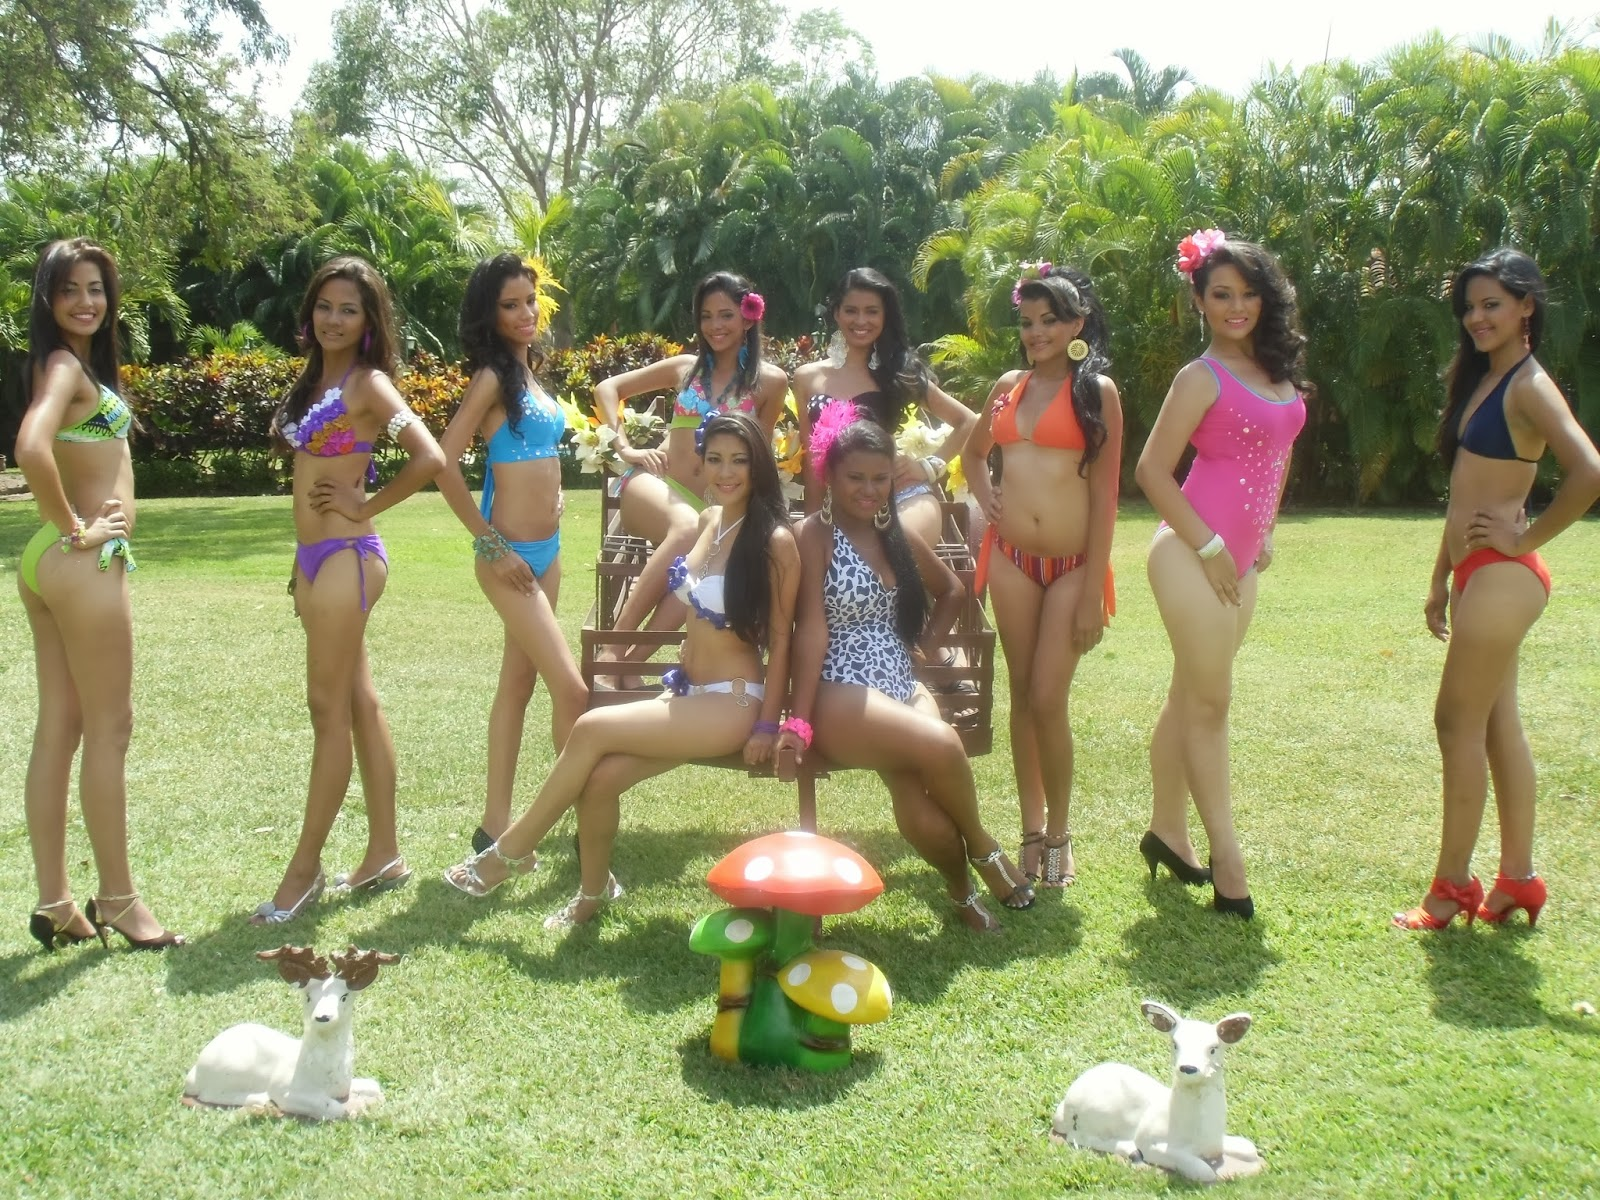 altagracia de orituco girls Get latest & exclusive altagracia de orituco news updates & stories explore photos & videos on altagracia de orituco also get news from india and world including business, cricket, technology, sports, politics, entertainment & live news coverage online at.